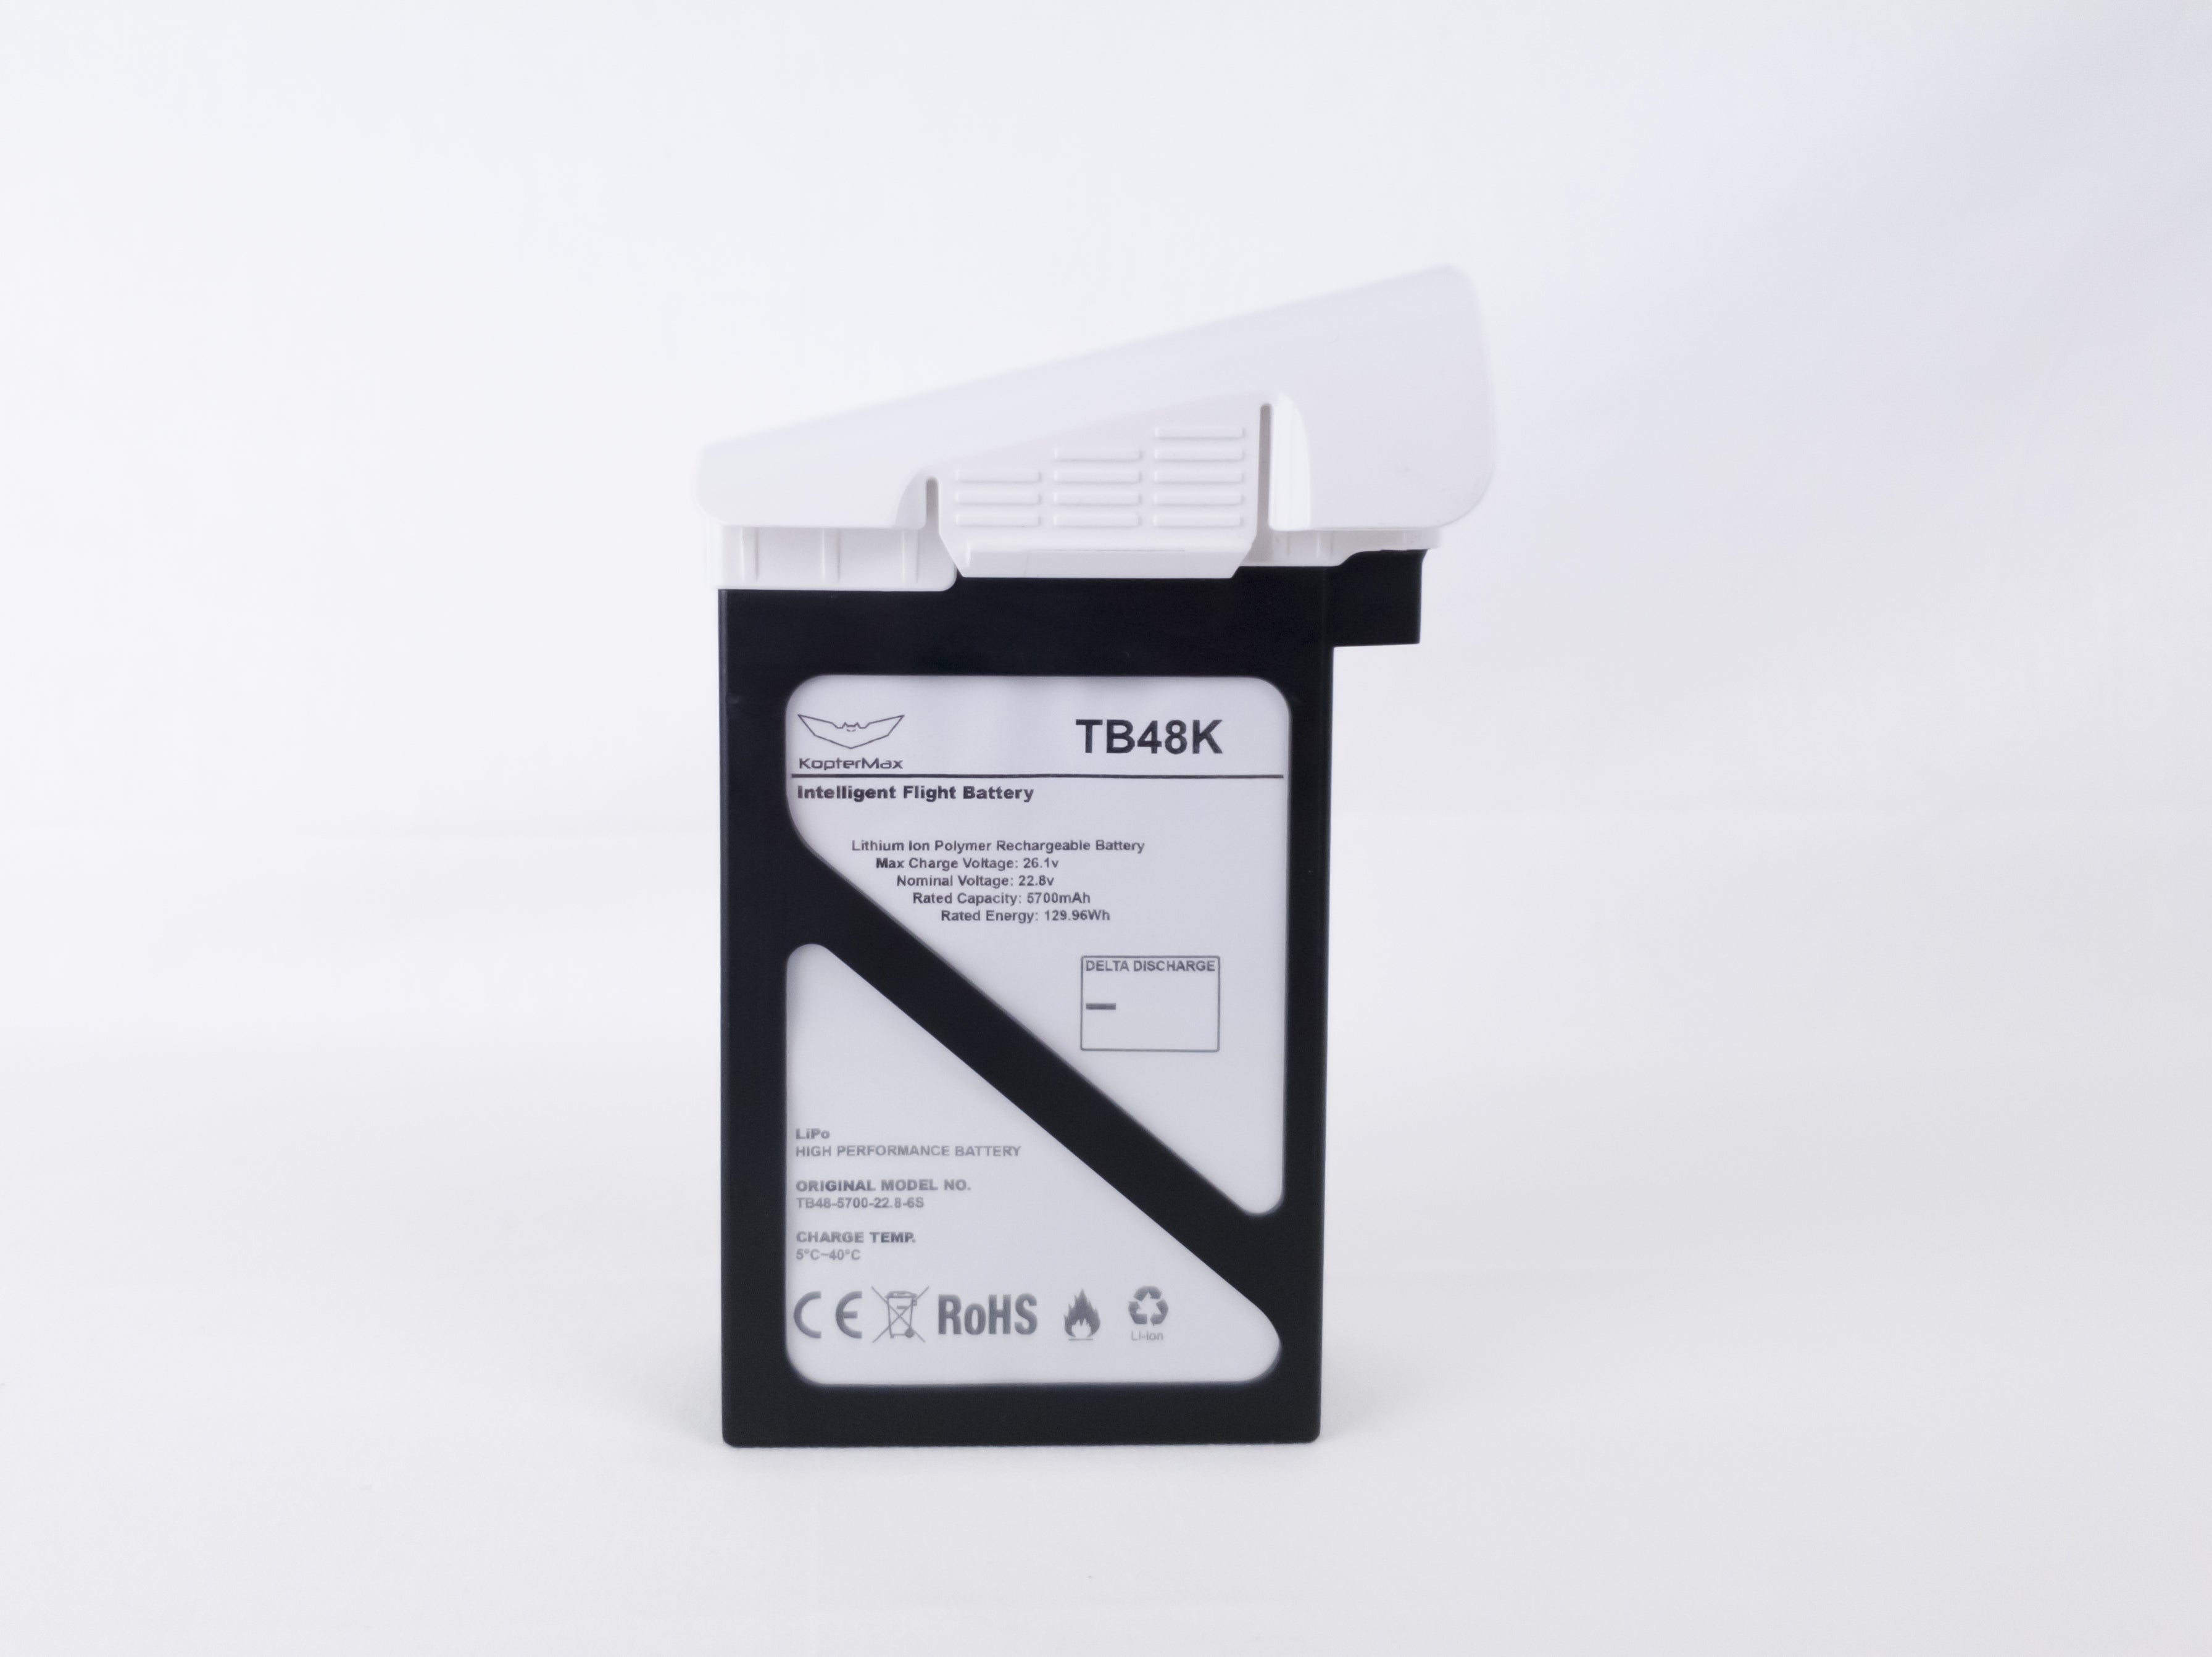 REGENERATED TB48 battery for DJI Inspire 1/Pro/v2